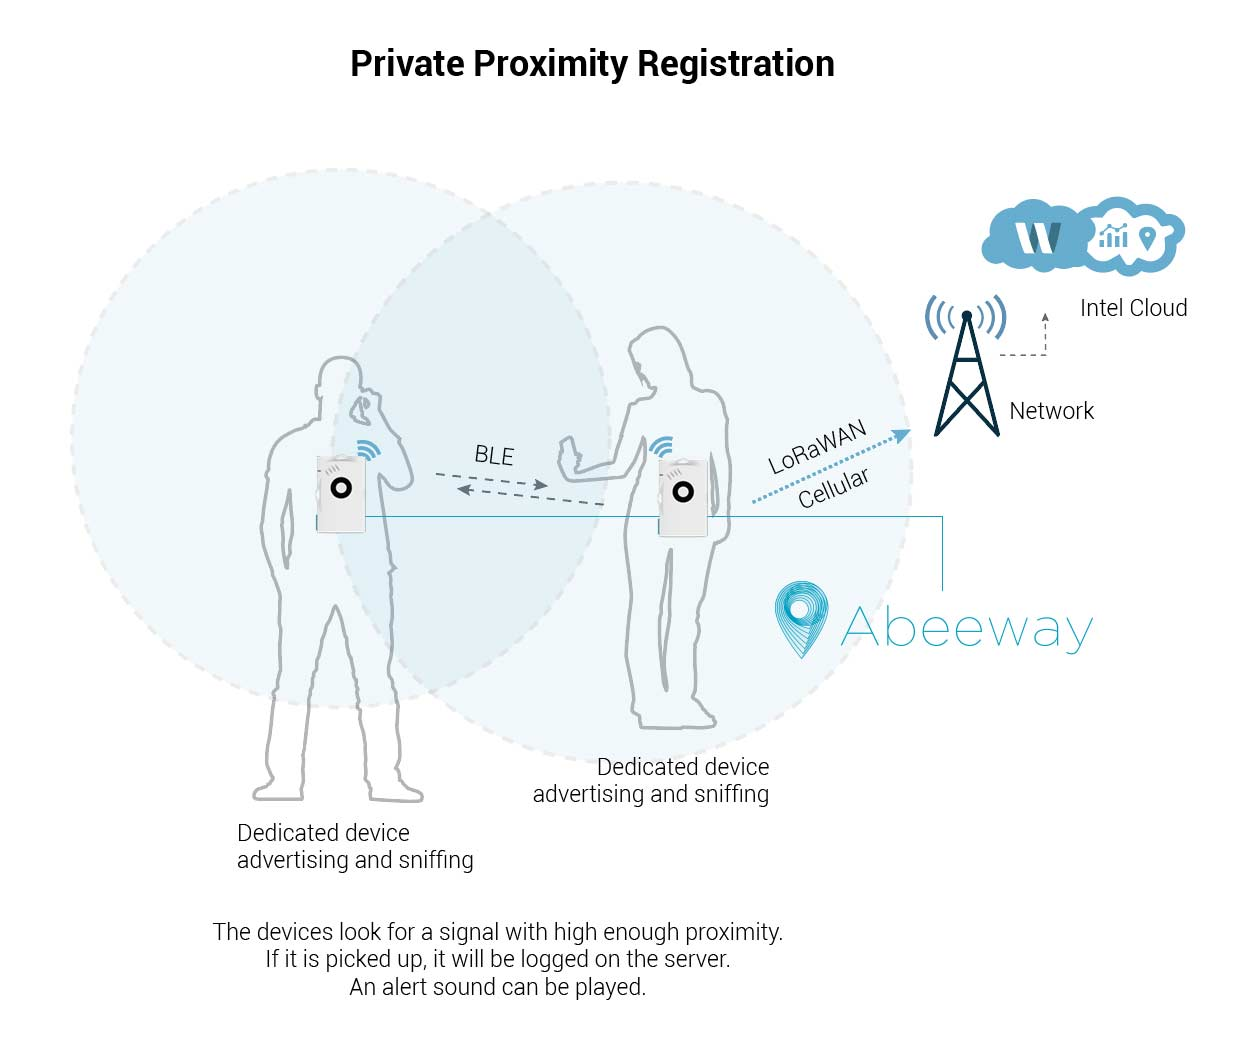 Private proximity Registration infographics second image